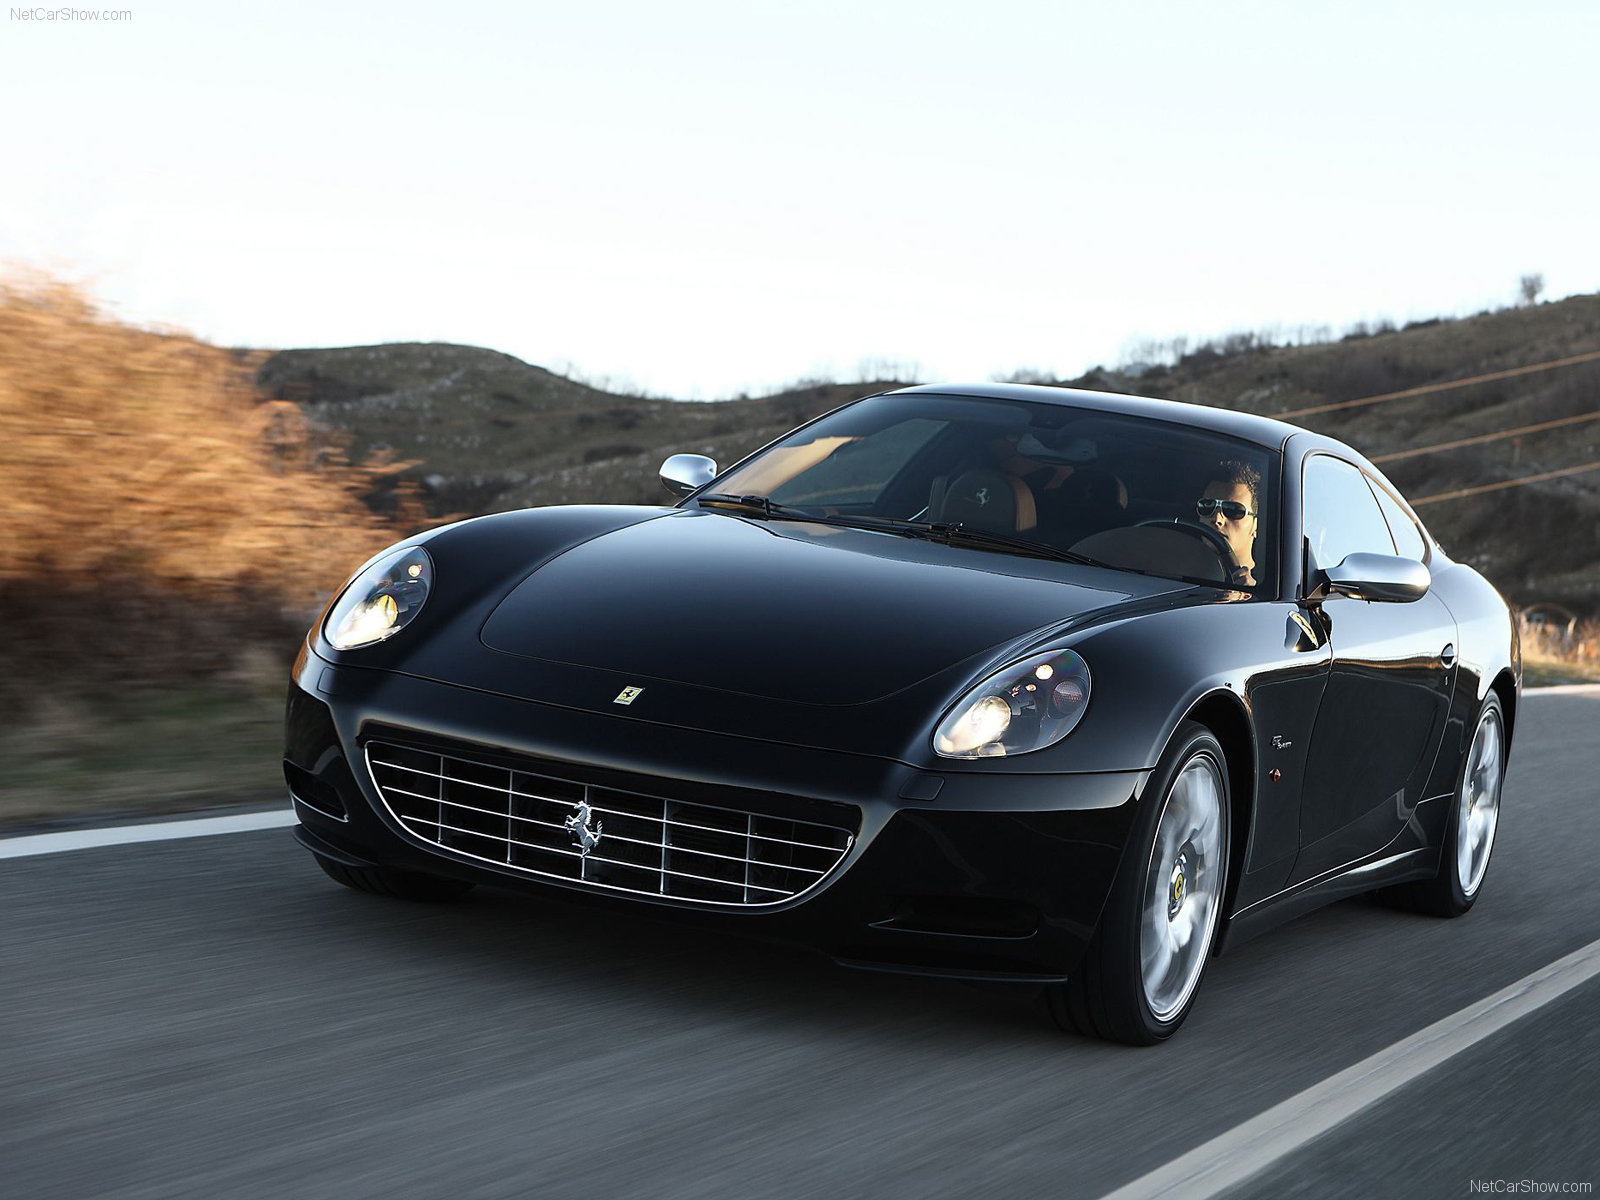 ferrari 612 scaglietti photos photogallery with 49 pics carsbase. Cars Review. Best American Auto & Cars Review